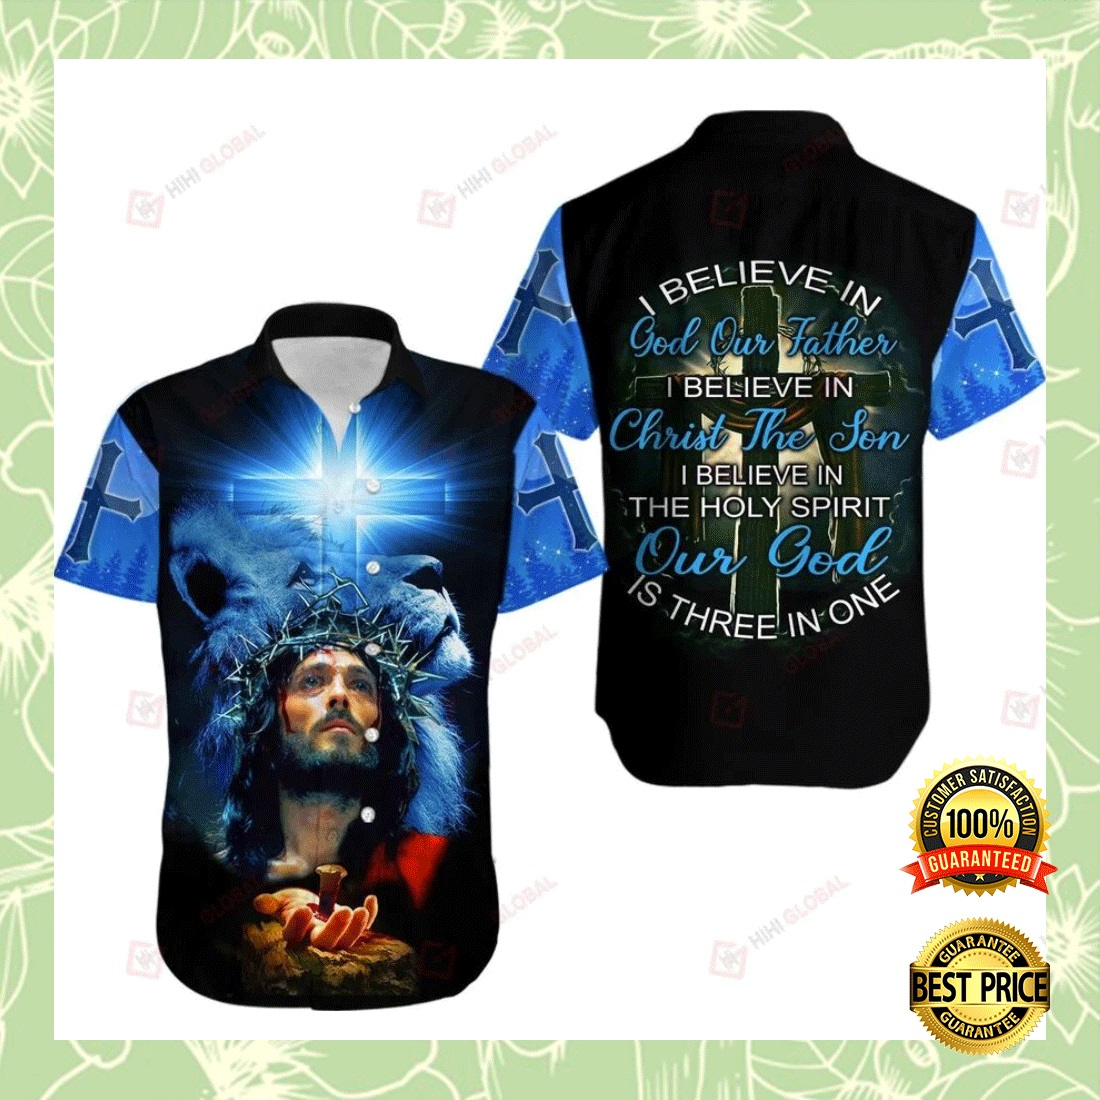 I BELIEVE IN GOD OUR FATHER I BELIEVE IN CHRIST THE SON HAWAIIAN SHIRT 7